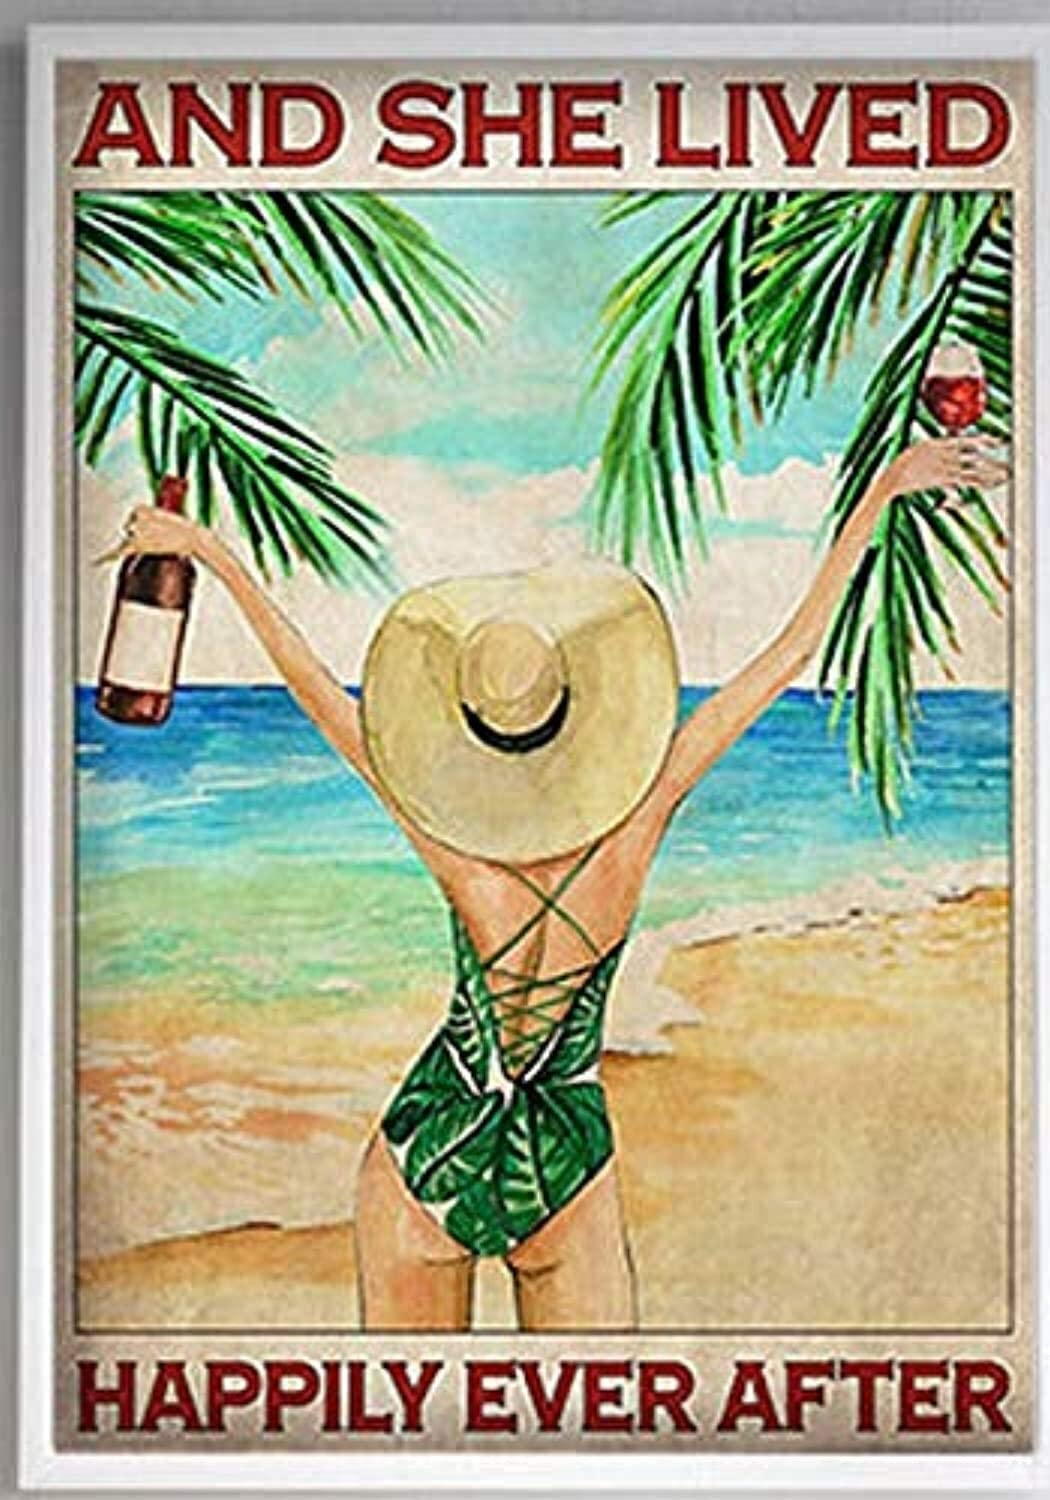 Beach Wine Summer and She Lived Happily Ever After Canvas Home Wall Art Canvas 0.75 Inch, Home Decor (Size 8x12, 12x18, 16x24, 24x36 Inches)